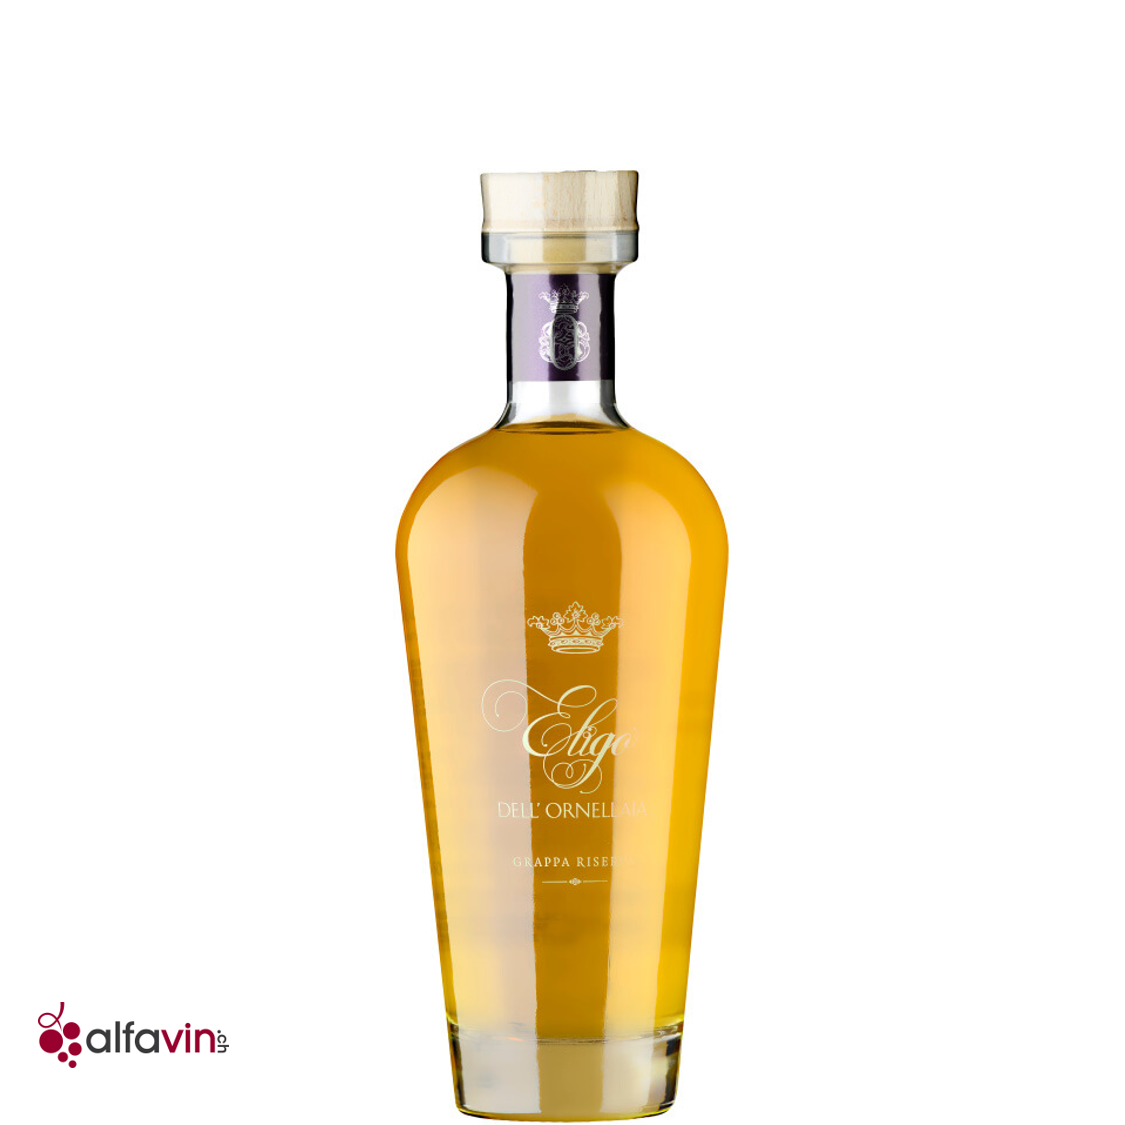 Grappa Ornellaia